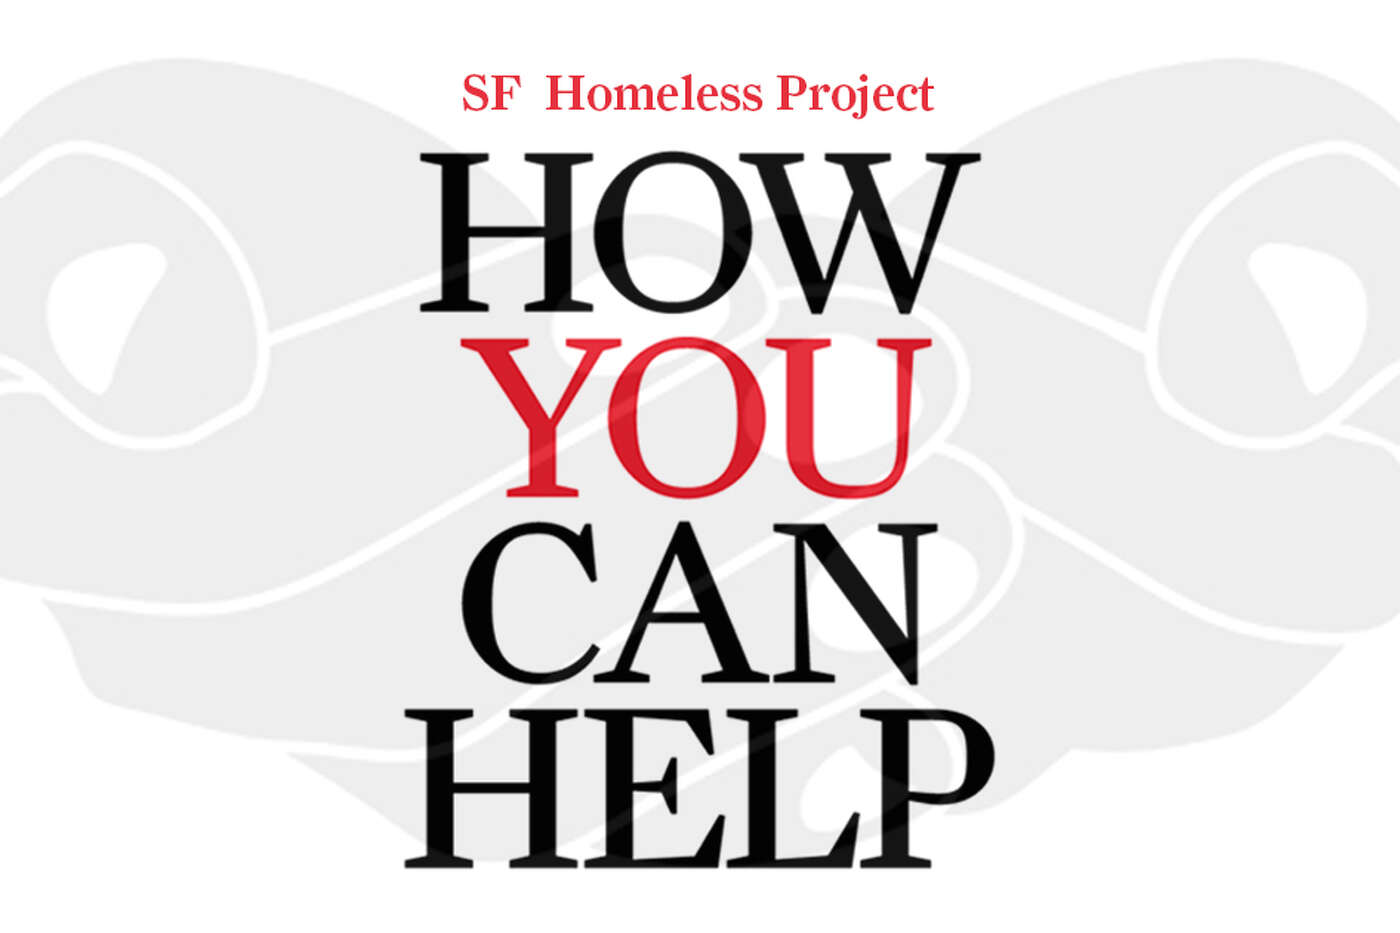 7a423a8bd Guide: How to help homeless people in the Bay Area